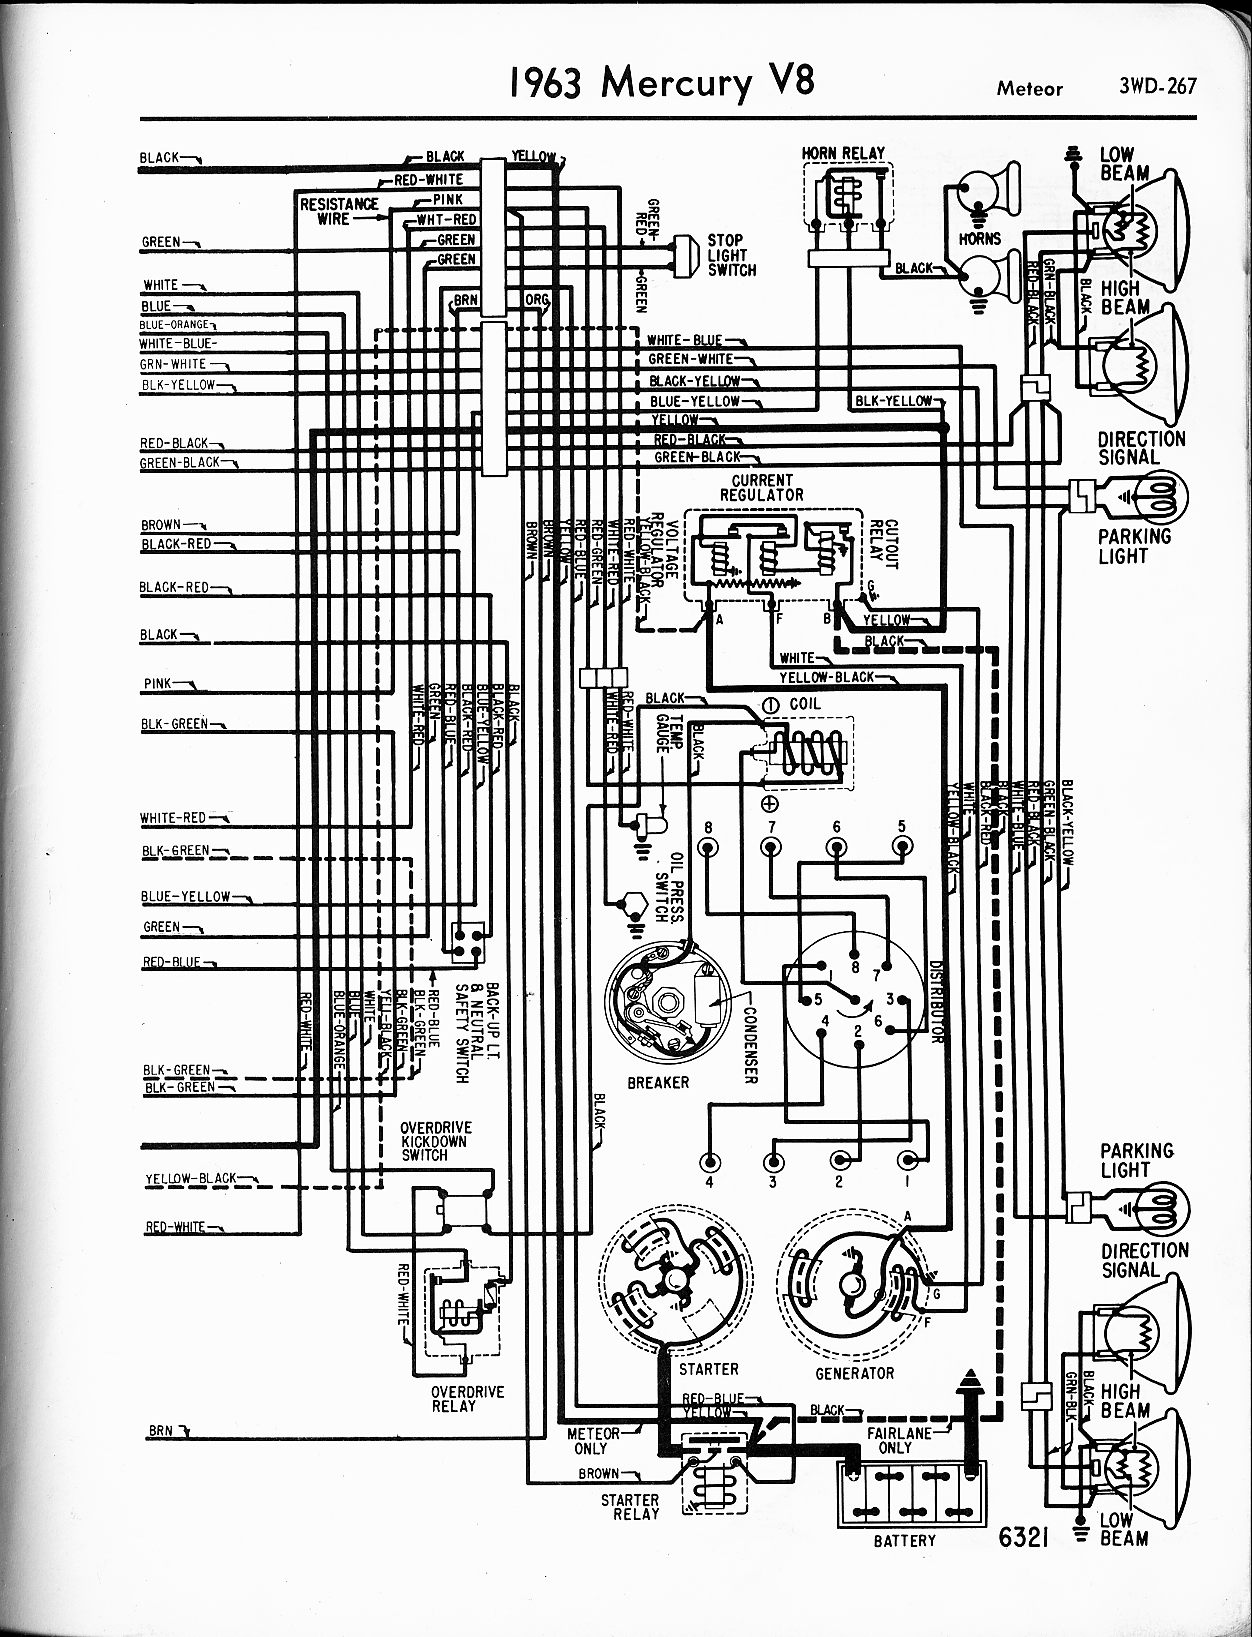 MWire5765 267 mercury wiring diagrams the old car manual project 1963 chevy nova wiring diagram at crackthecode.co